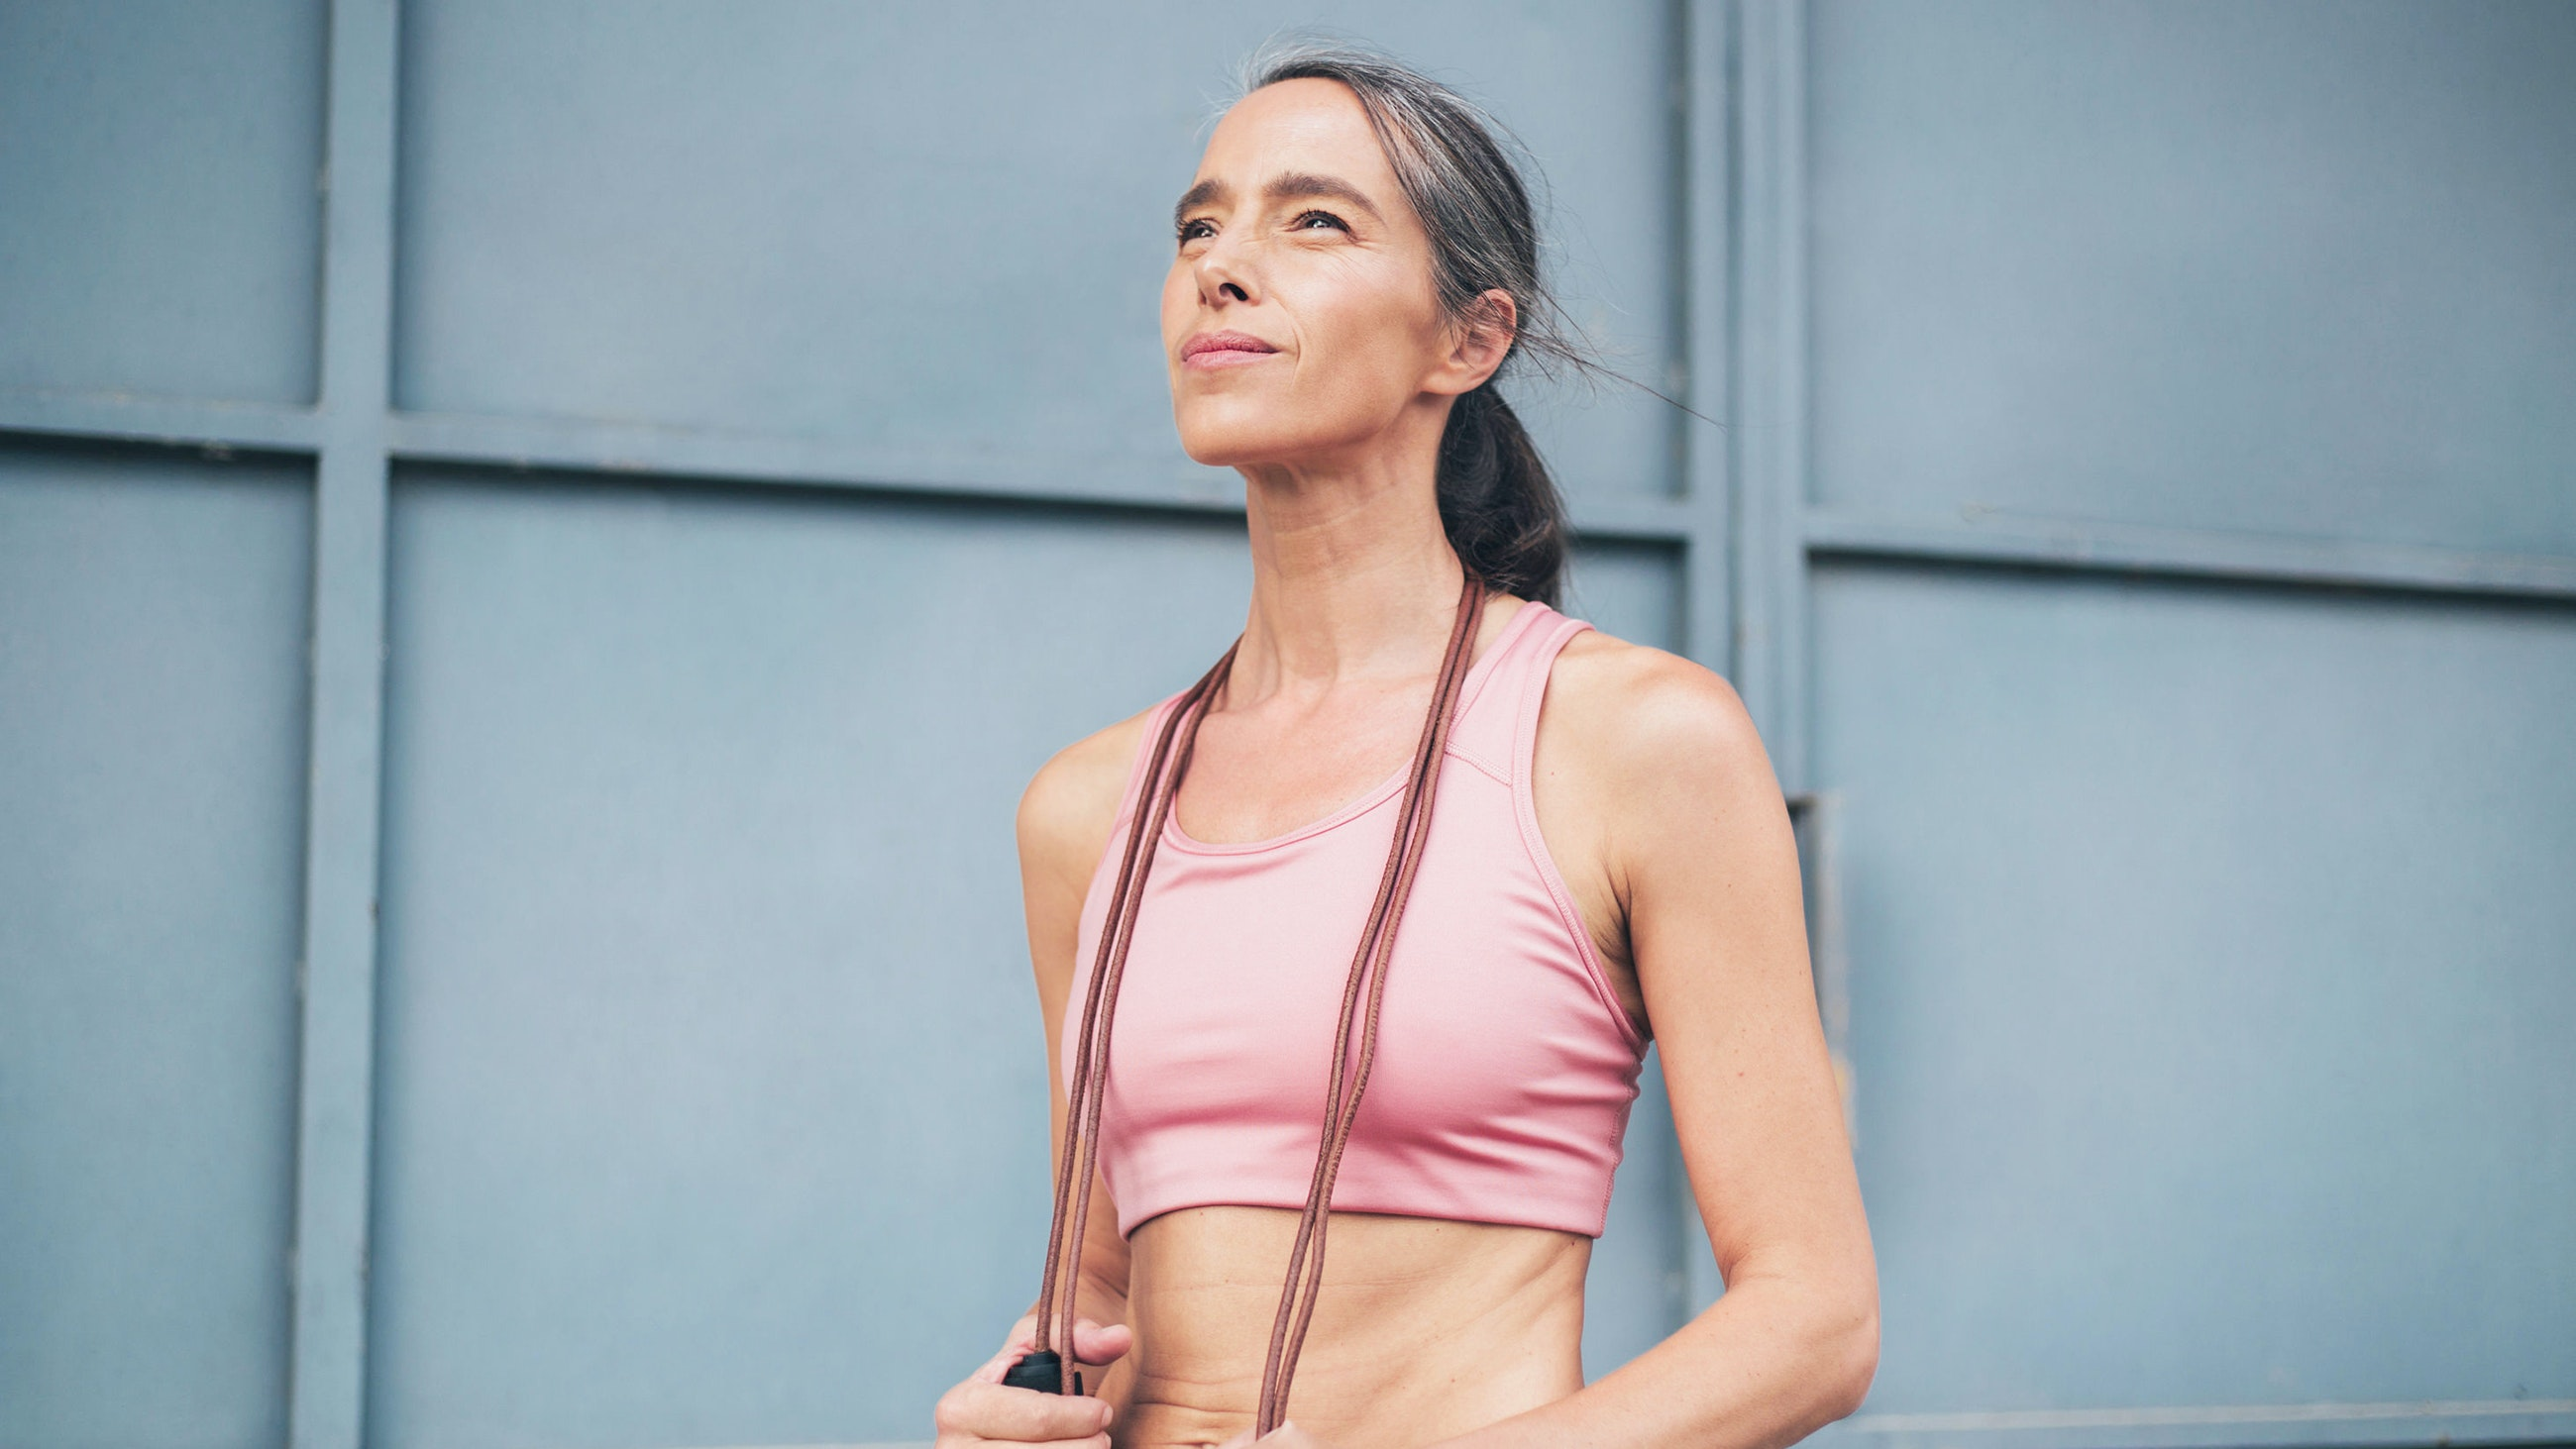 Experts Reveal the Unexpected Beauty Benefits of Working Out